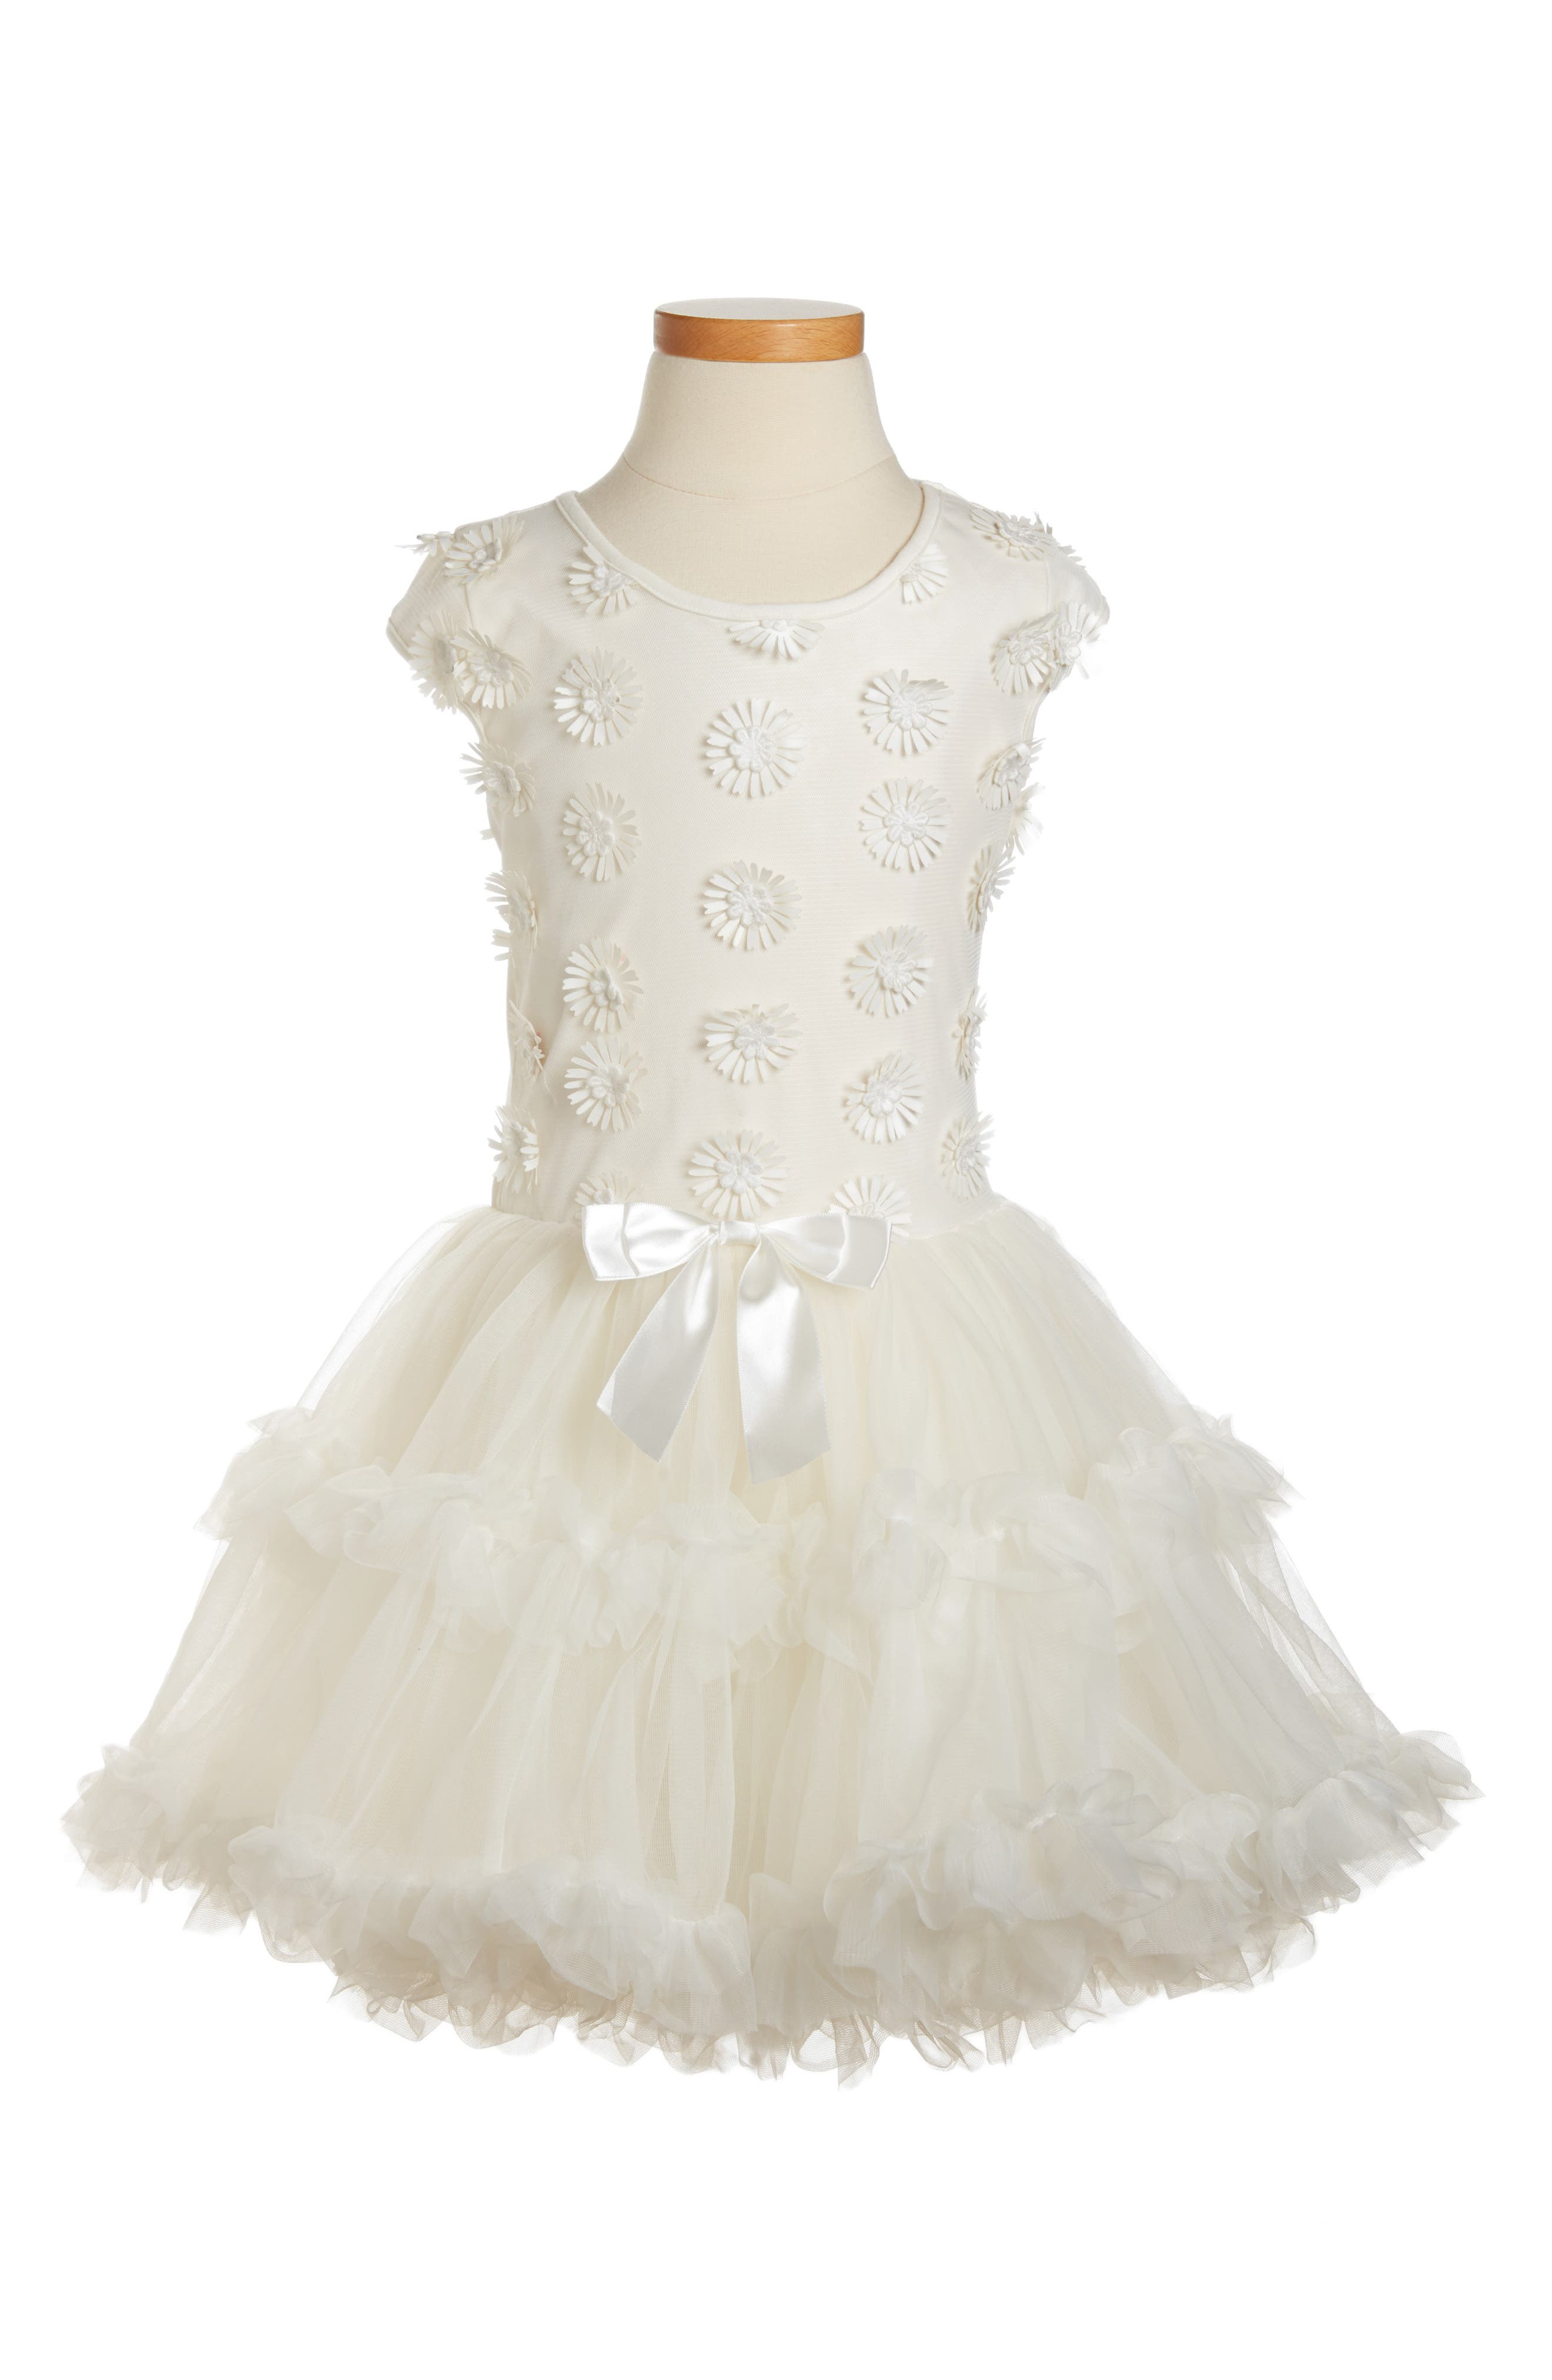 Main Image - Popatu Daisy Pettidress (Toddler Girls & Little Girls)